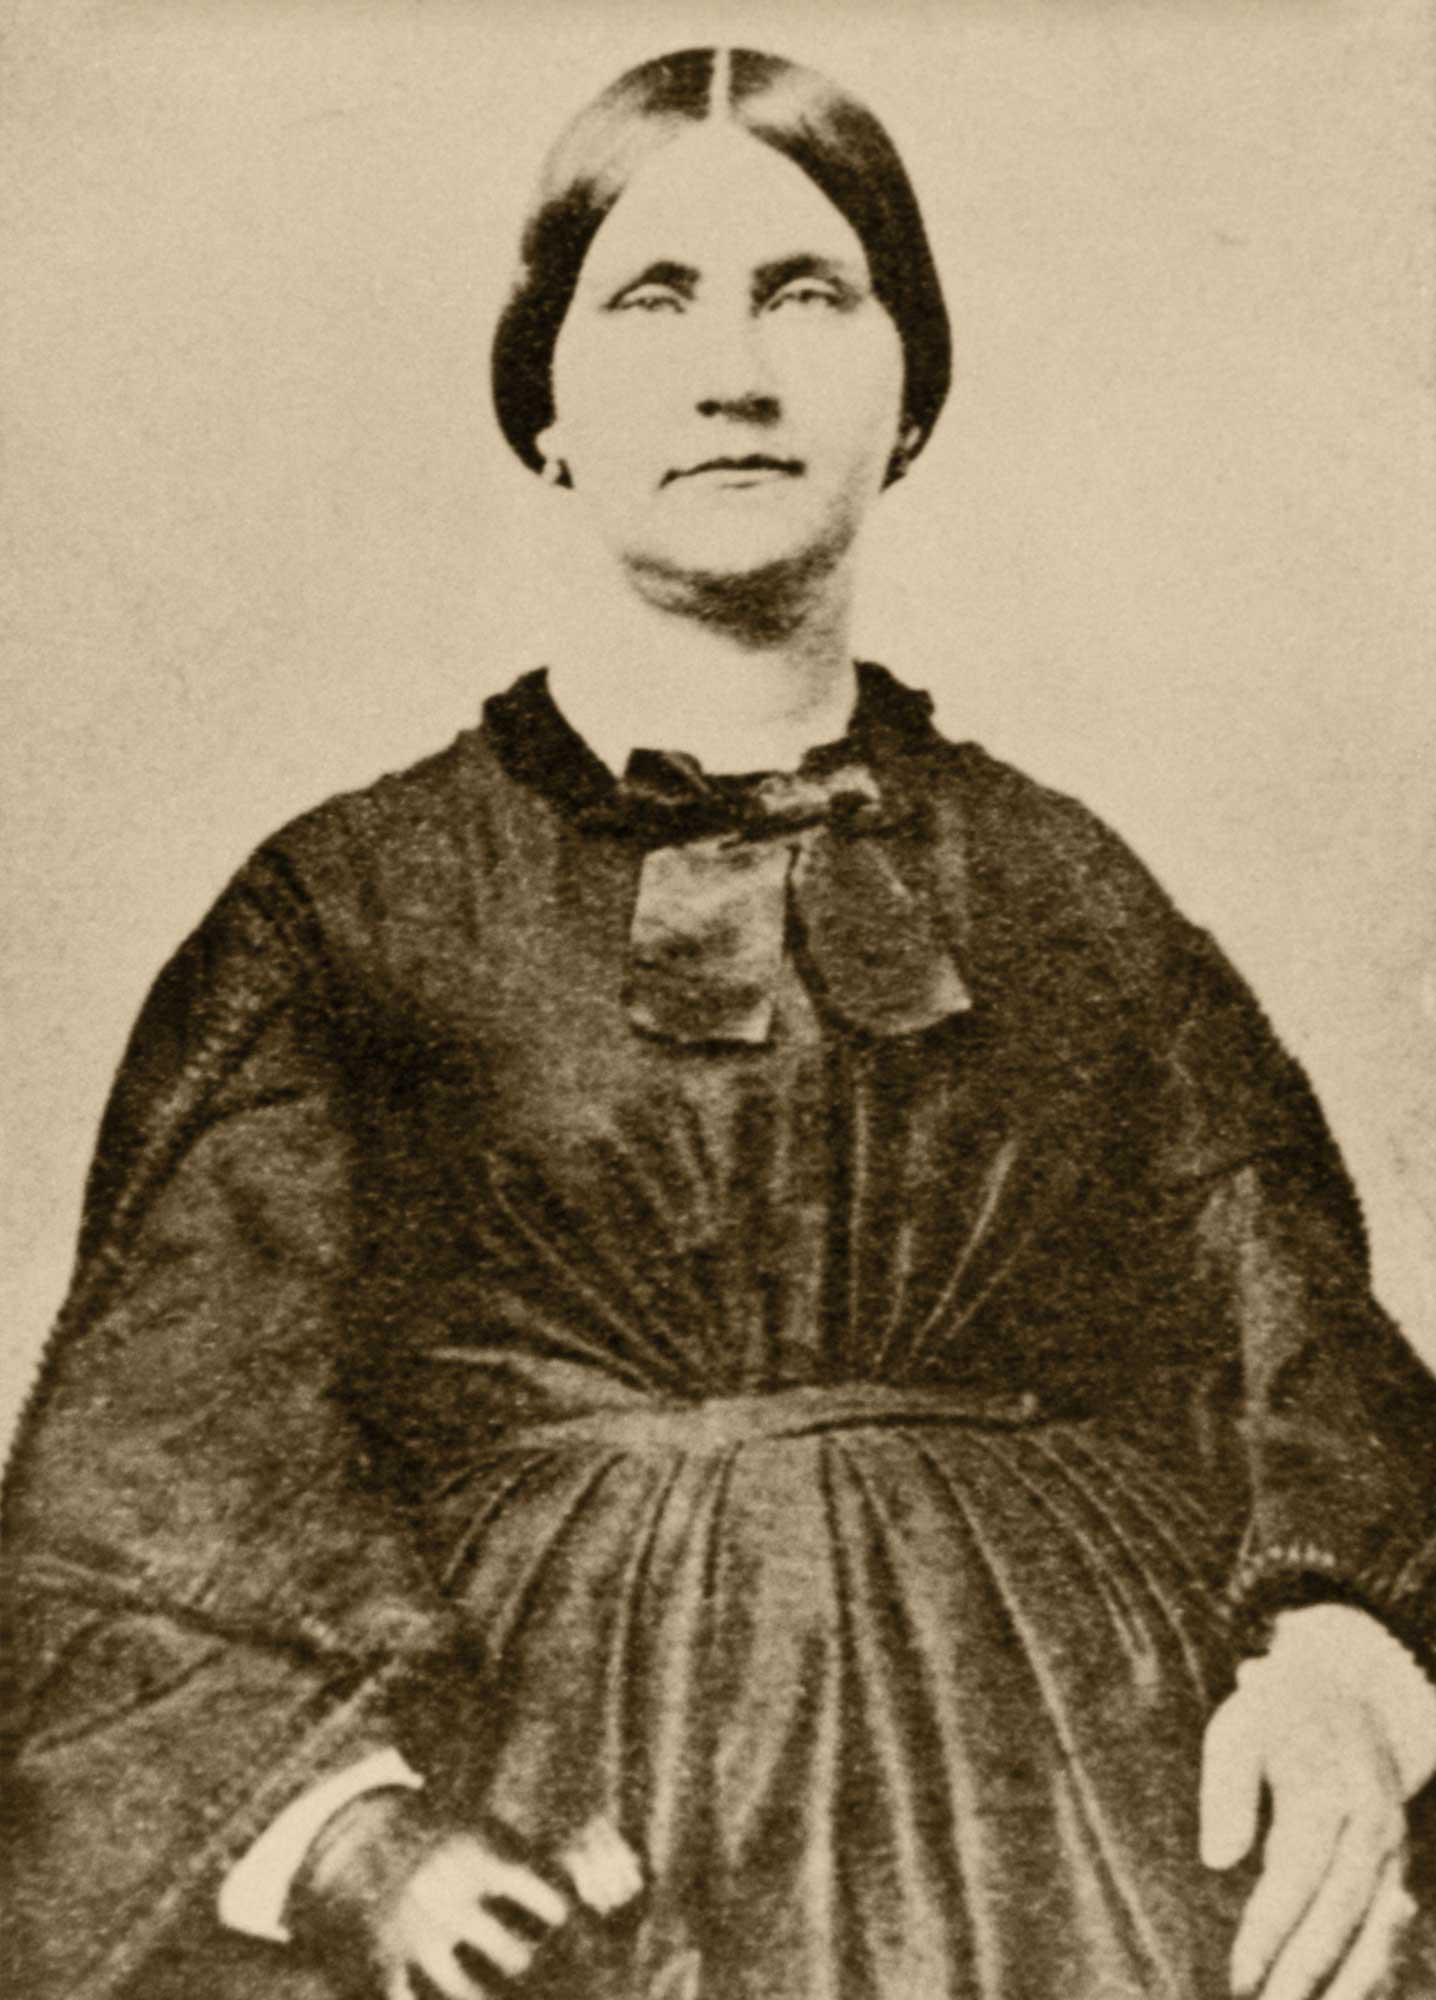 Black and white image of Mary Surratt. She wears a modest 1860s dark dress with buttons down the middle and small collar. Her hair is pulled back tightly with a part down the middle.